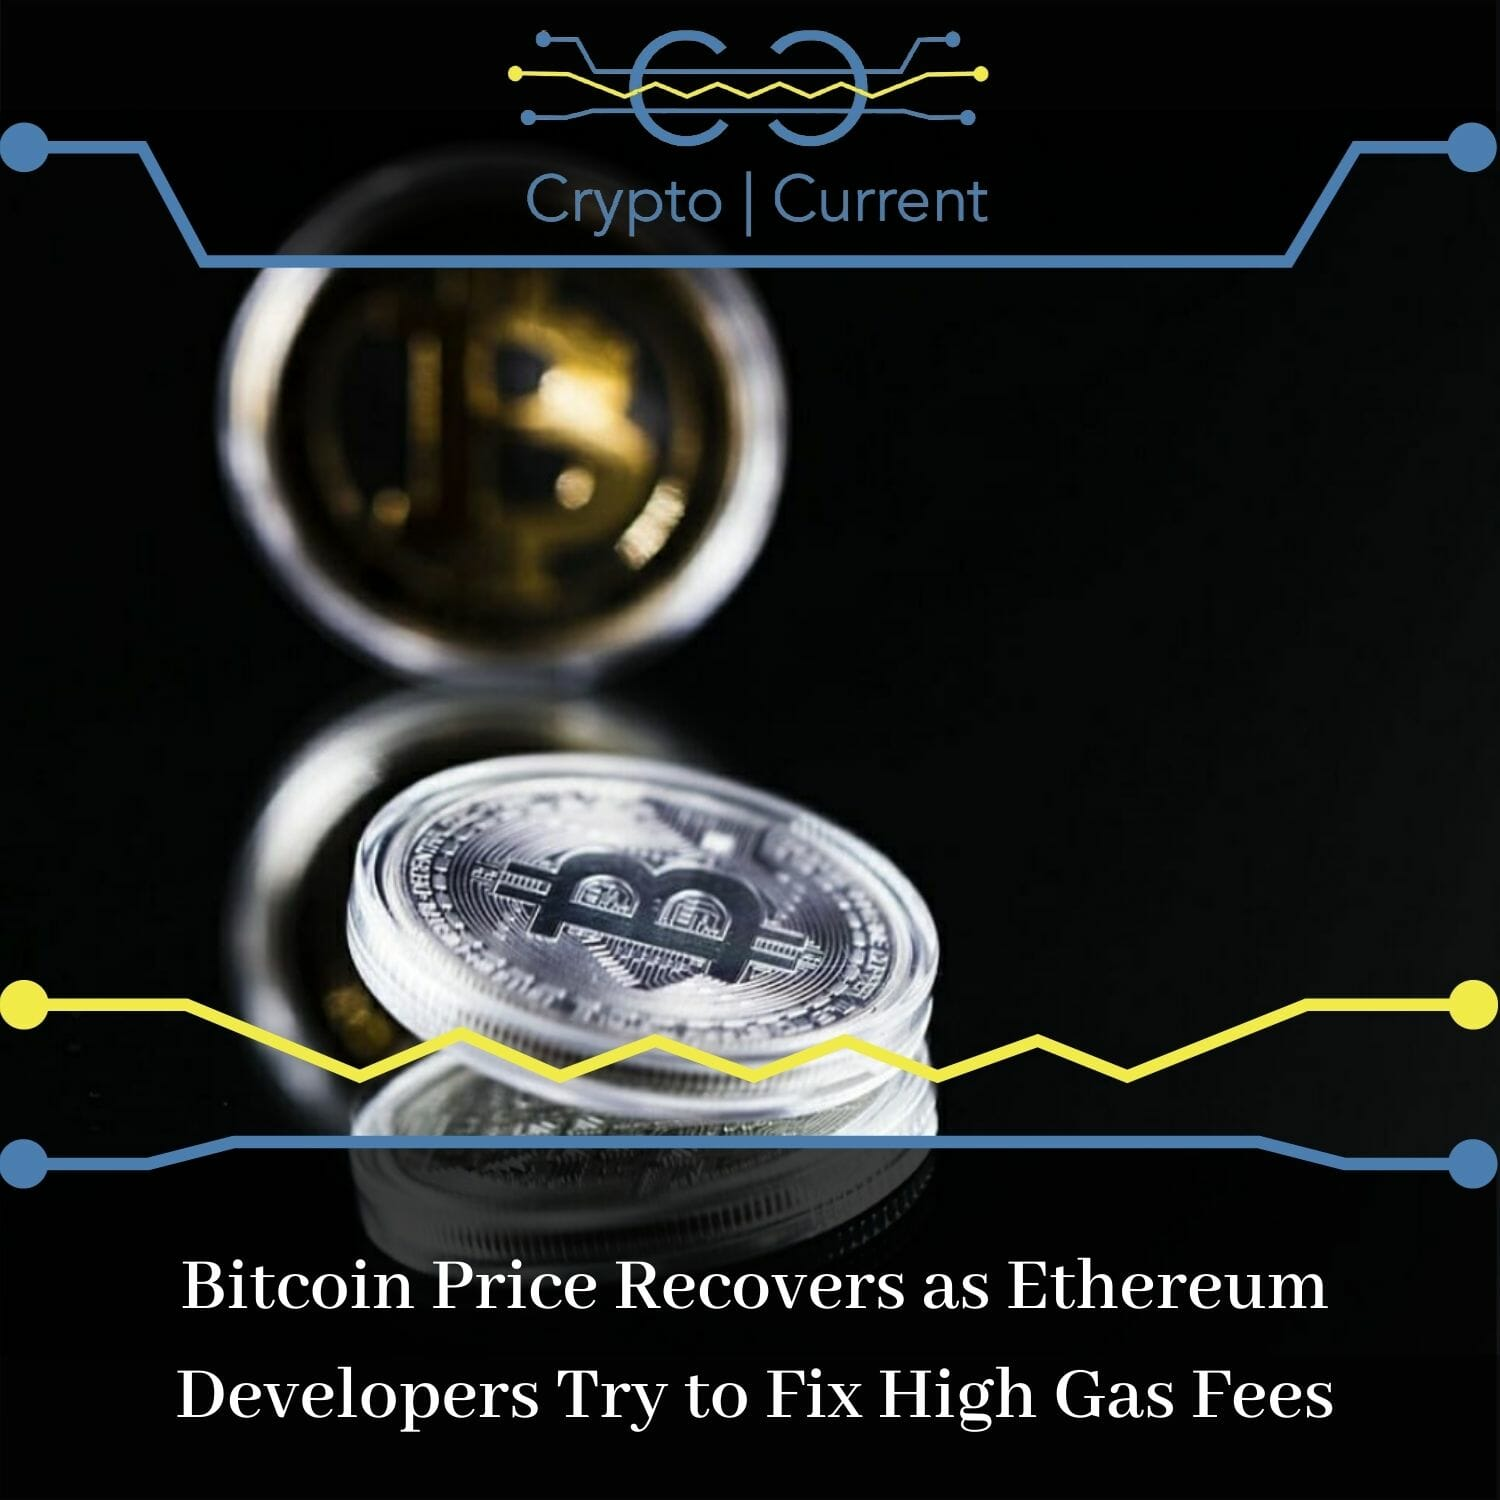 Bitcoin Price Recovers as Ethereum Developers Try to Fix High Gas Fees